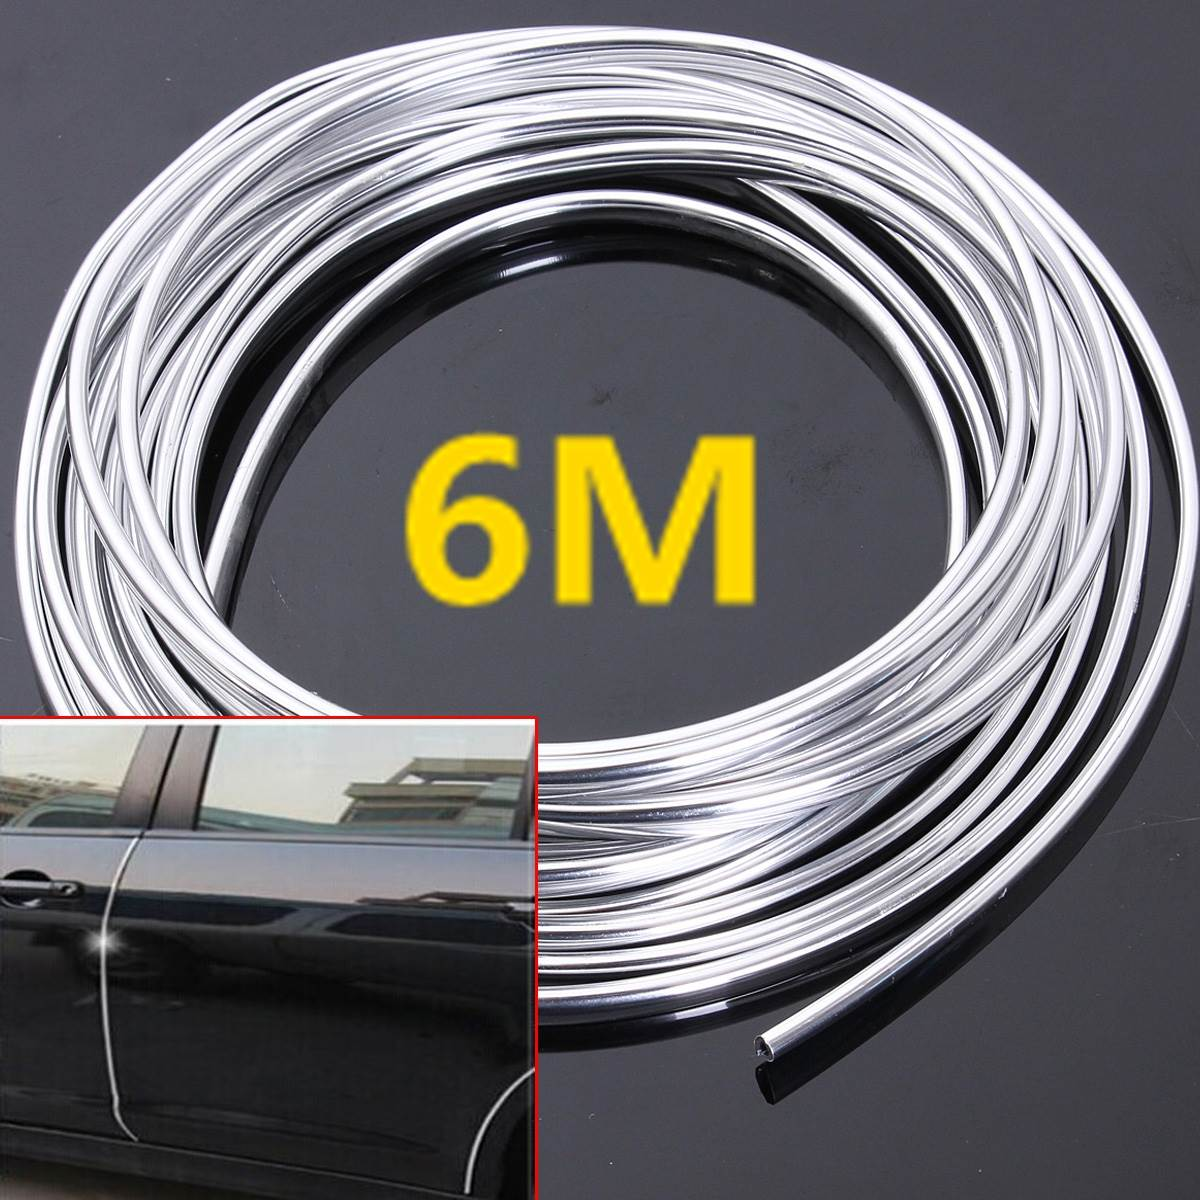 6M Chrome Moulding Trim Strip Car Door Edge Scratch Guard Protector Cover Strip Roll speedwow 8m car door edge guard scratch strip protector rubber trim molding scratch strip for toyota audi bmw vw ford